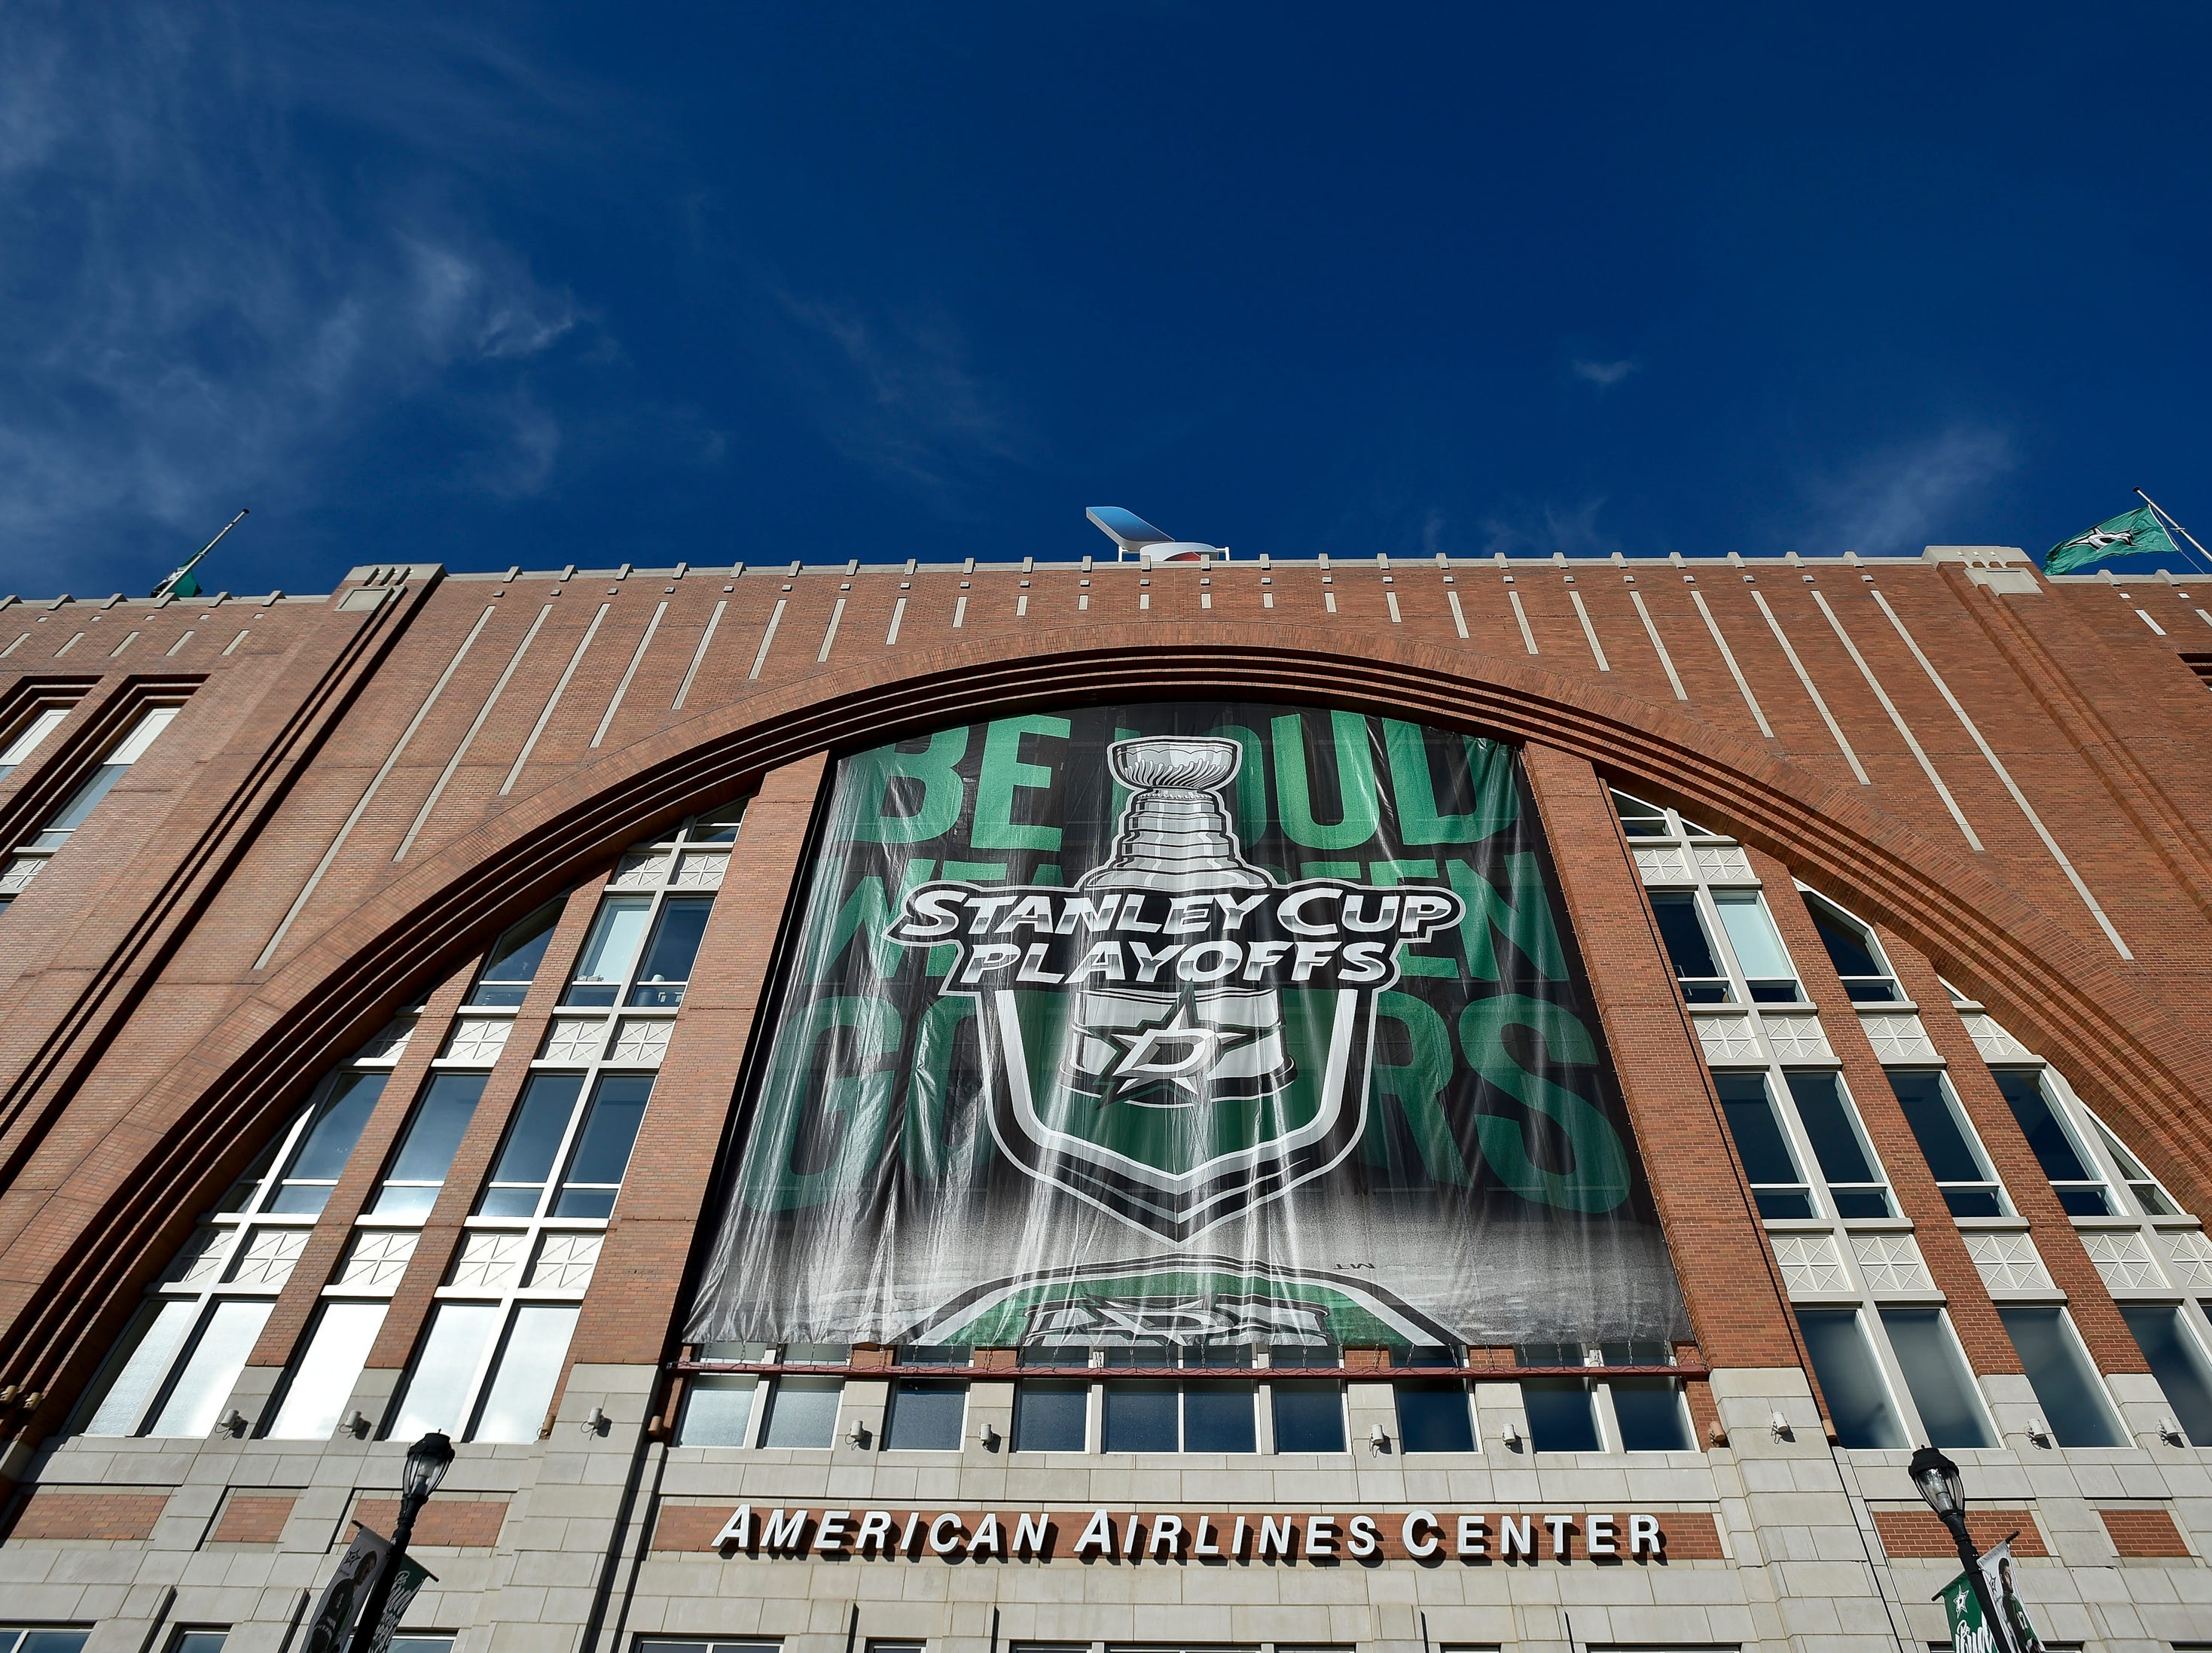 A playoffs banner is seen on the exterior before the divisional semifinal game between the Dallas Stars and the Nashville Predators at the American Airlines Center in Dallas, Texas., Monday, April 15, 2019.